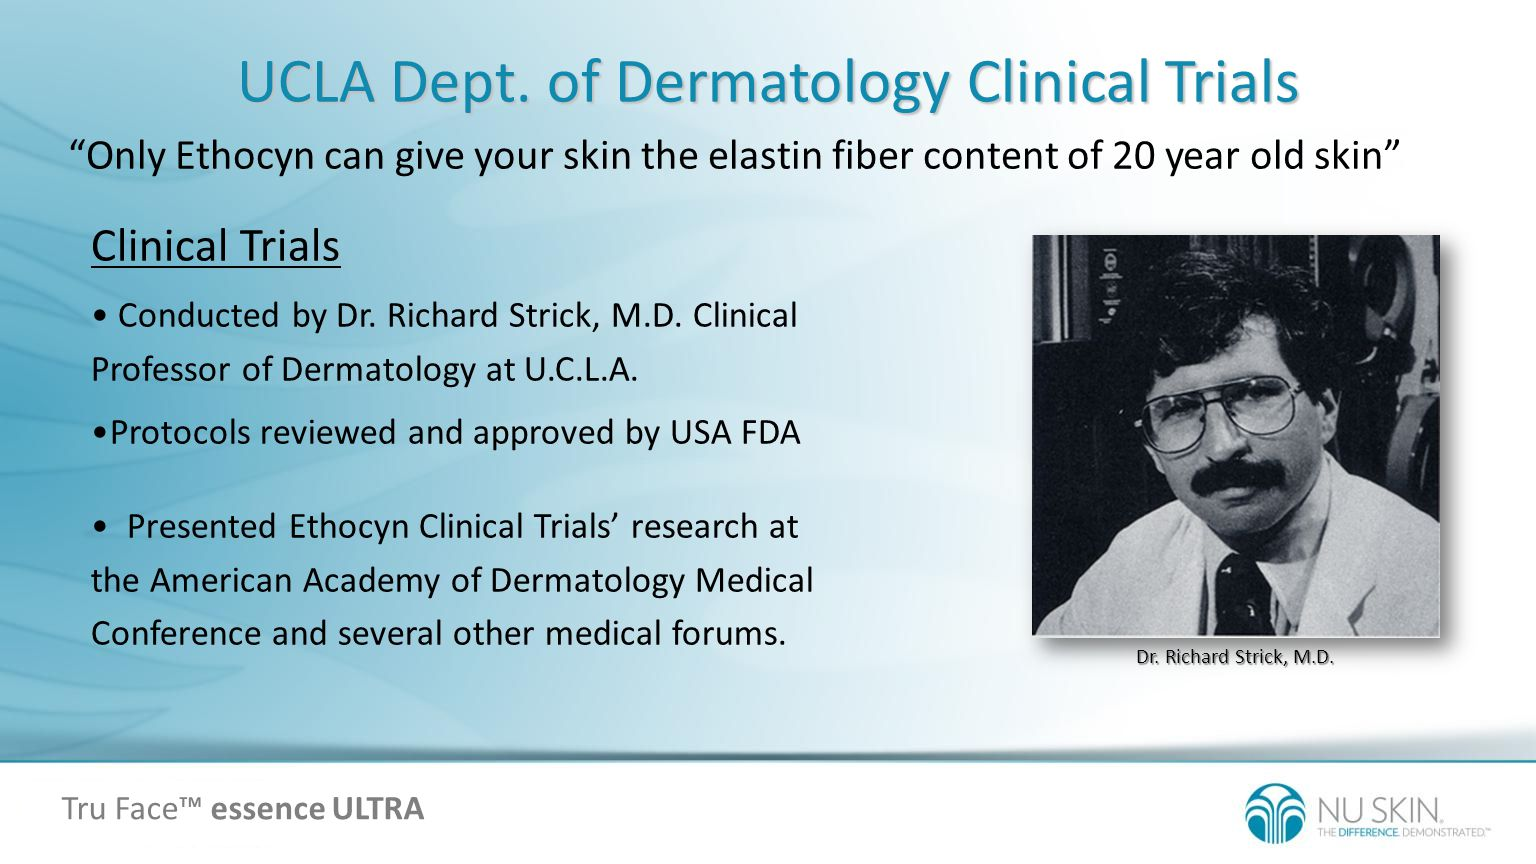 UCLA Dept. of Dermatology Clinical Trials Clinical Trials Conducted by Dr. Richard Strick, M.D. Clinical Professor of Dermatology at U.C.L.A. Protocol